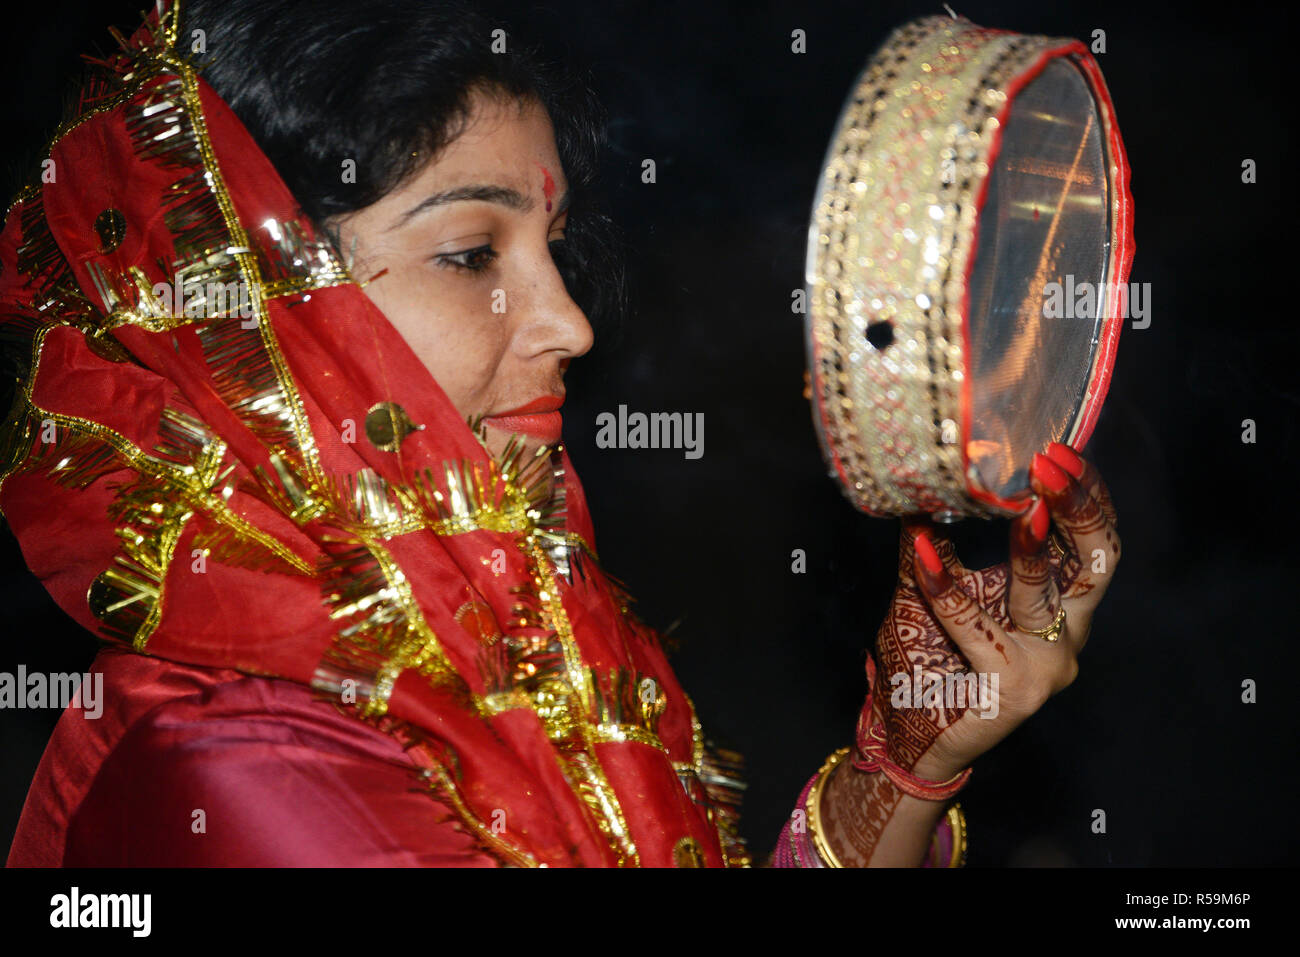 Woman Looking at moon through a sieve during Karva Chauth - Stock Image